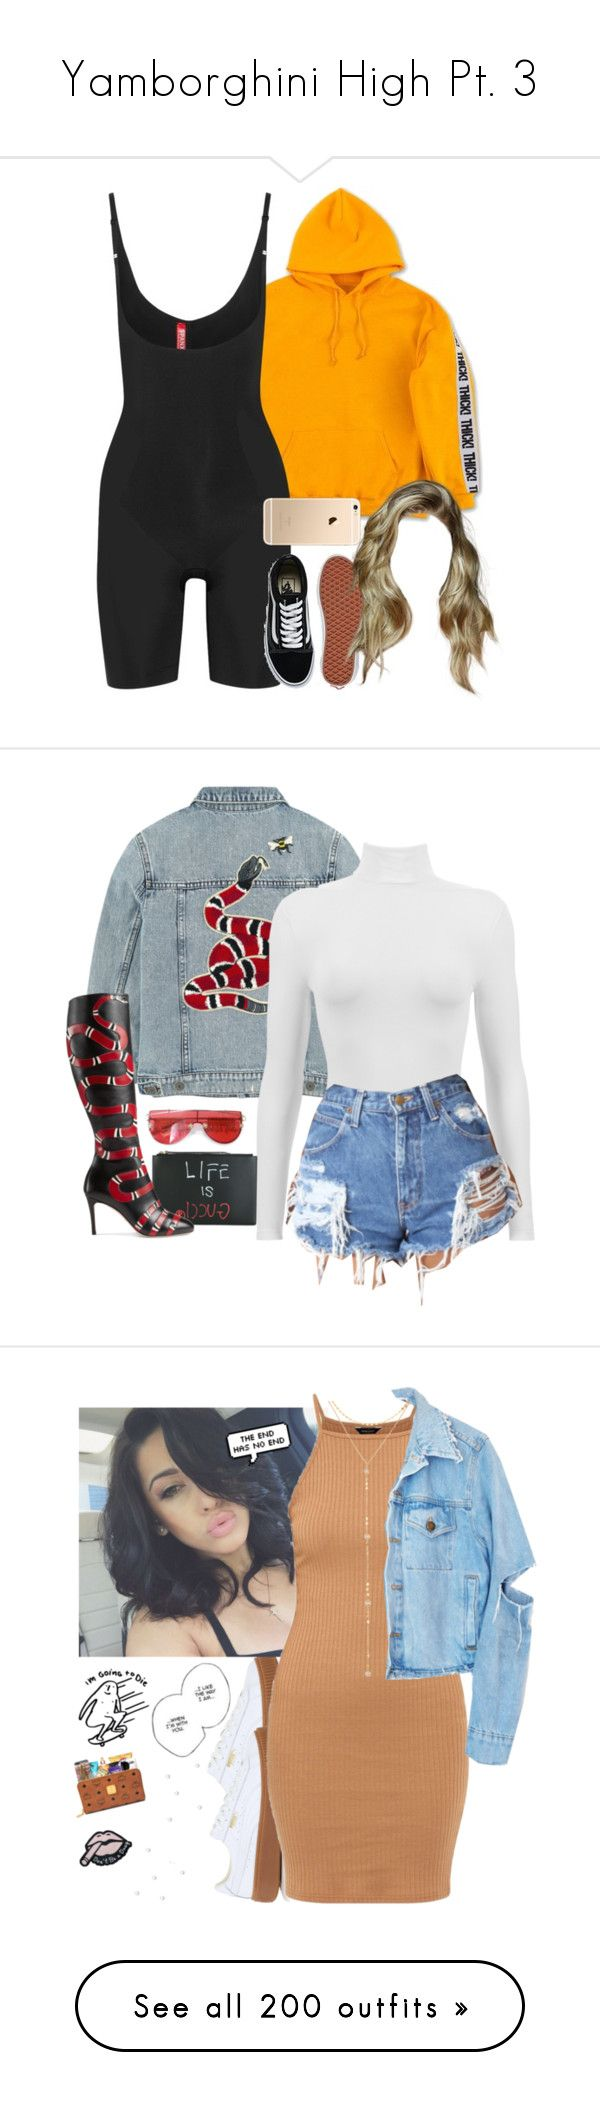 """""""Yamborghini High Pt. 3"""" by rosegoldpersian ❤ liked on Polyvore featuring SPANX, Vans, Gucci, Dukes, Tnemnroda, gucci, Puma, Fragments, Garrett Leight and Yves Saint Laurent"""